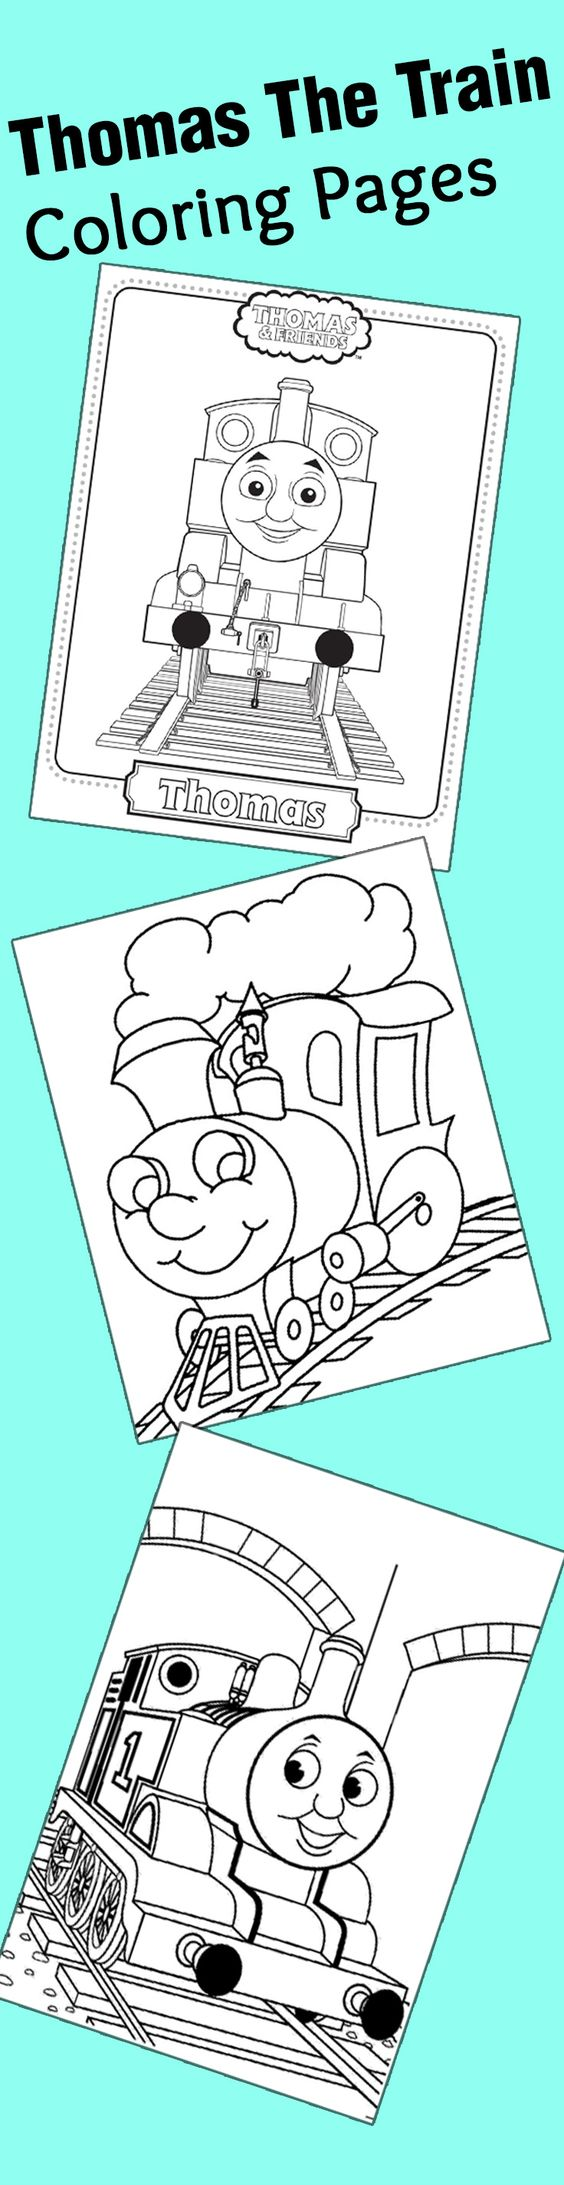 thomas coloring pages train engineer - photo#23